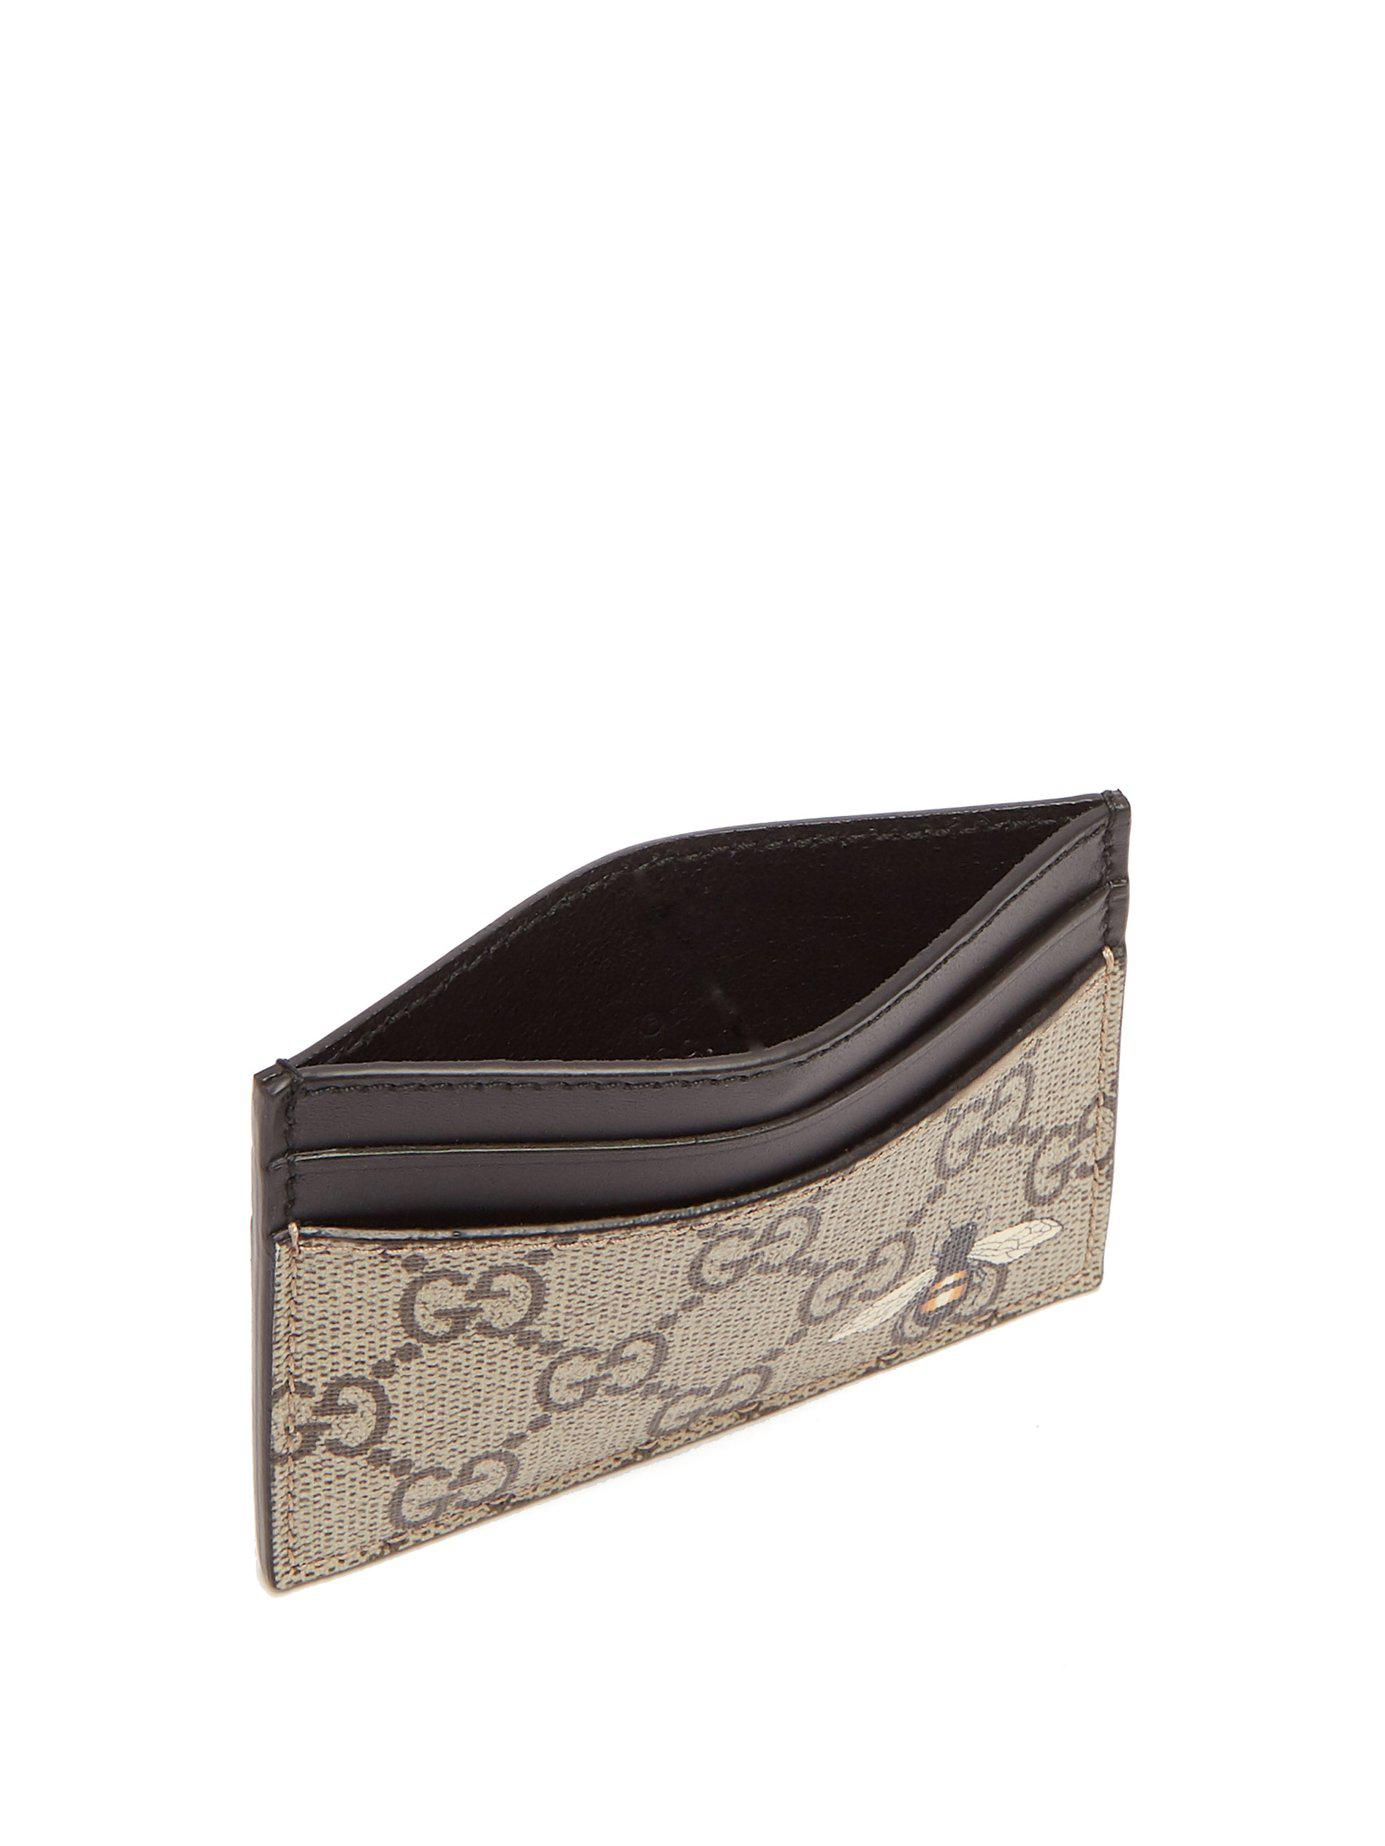 90d2d5607038 Lyst - Gucci Gg Supreme Bee Print Canvas Cardholder in Brown for Men